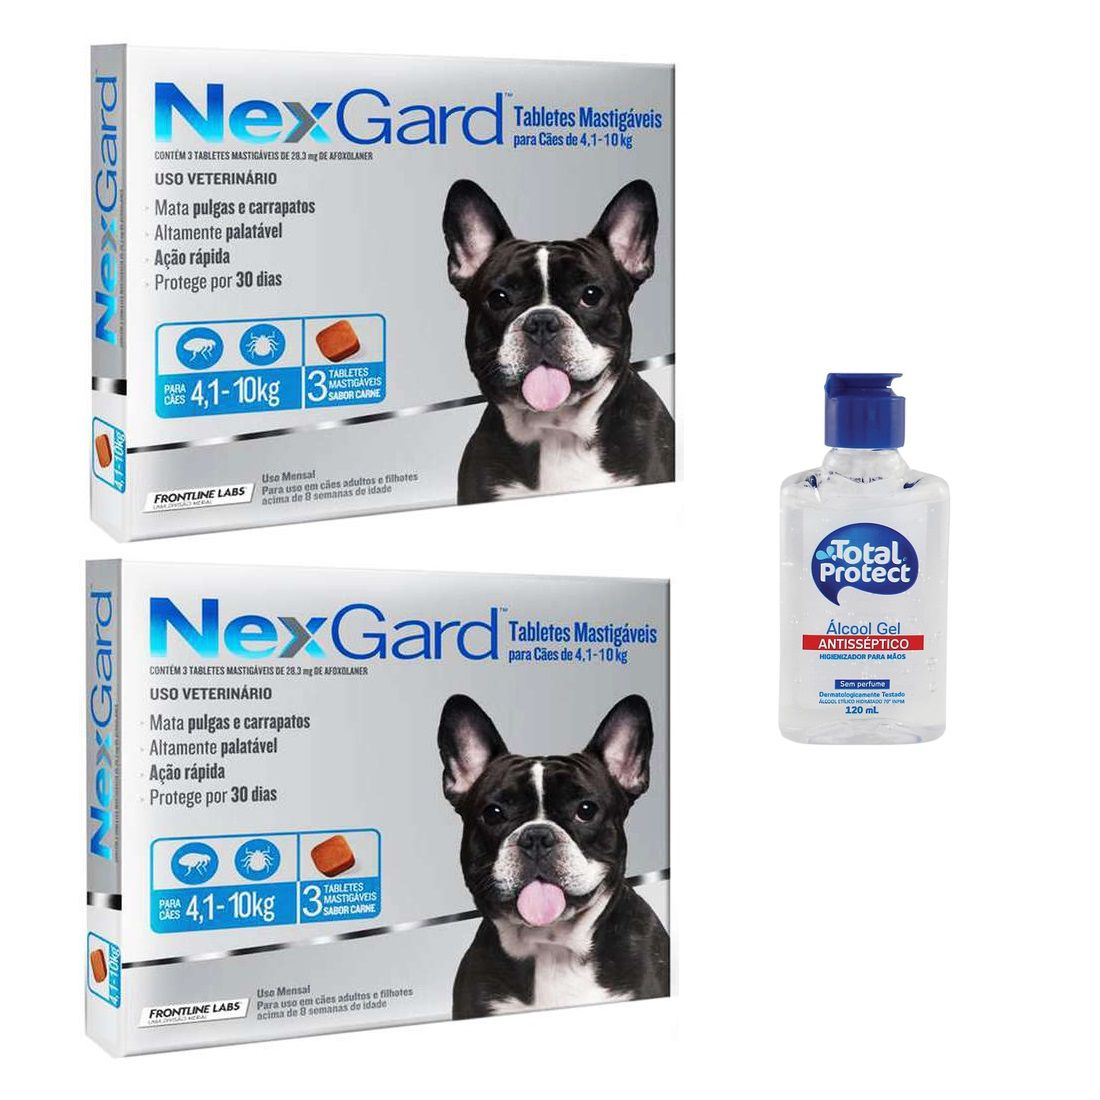 Kit 2 Unidades Antipulgas e Carrapatos Nexgard 28,3mg para Cães de 4,1 a 10kg (3 tabletes) - Merial + Brinde Álcool Gel 120ml Total Protect